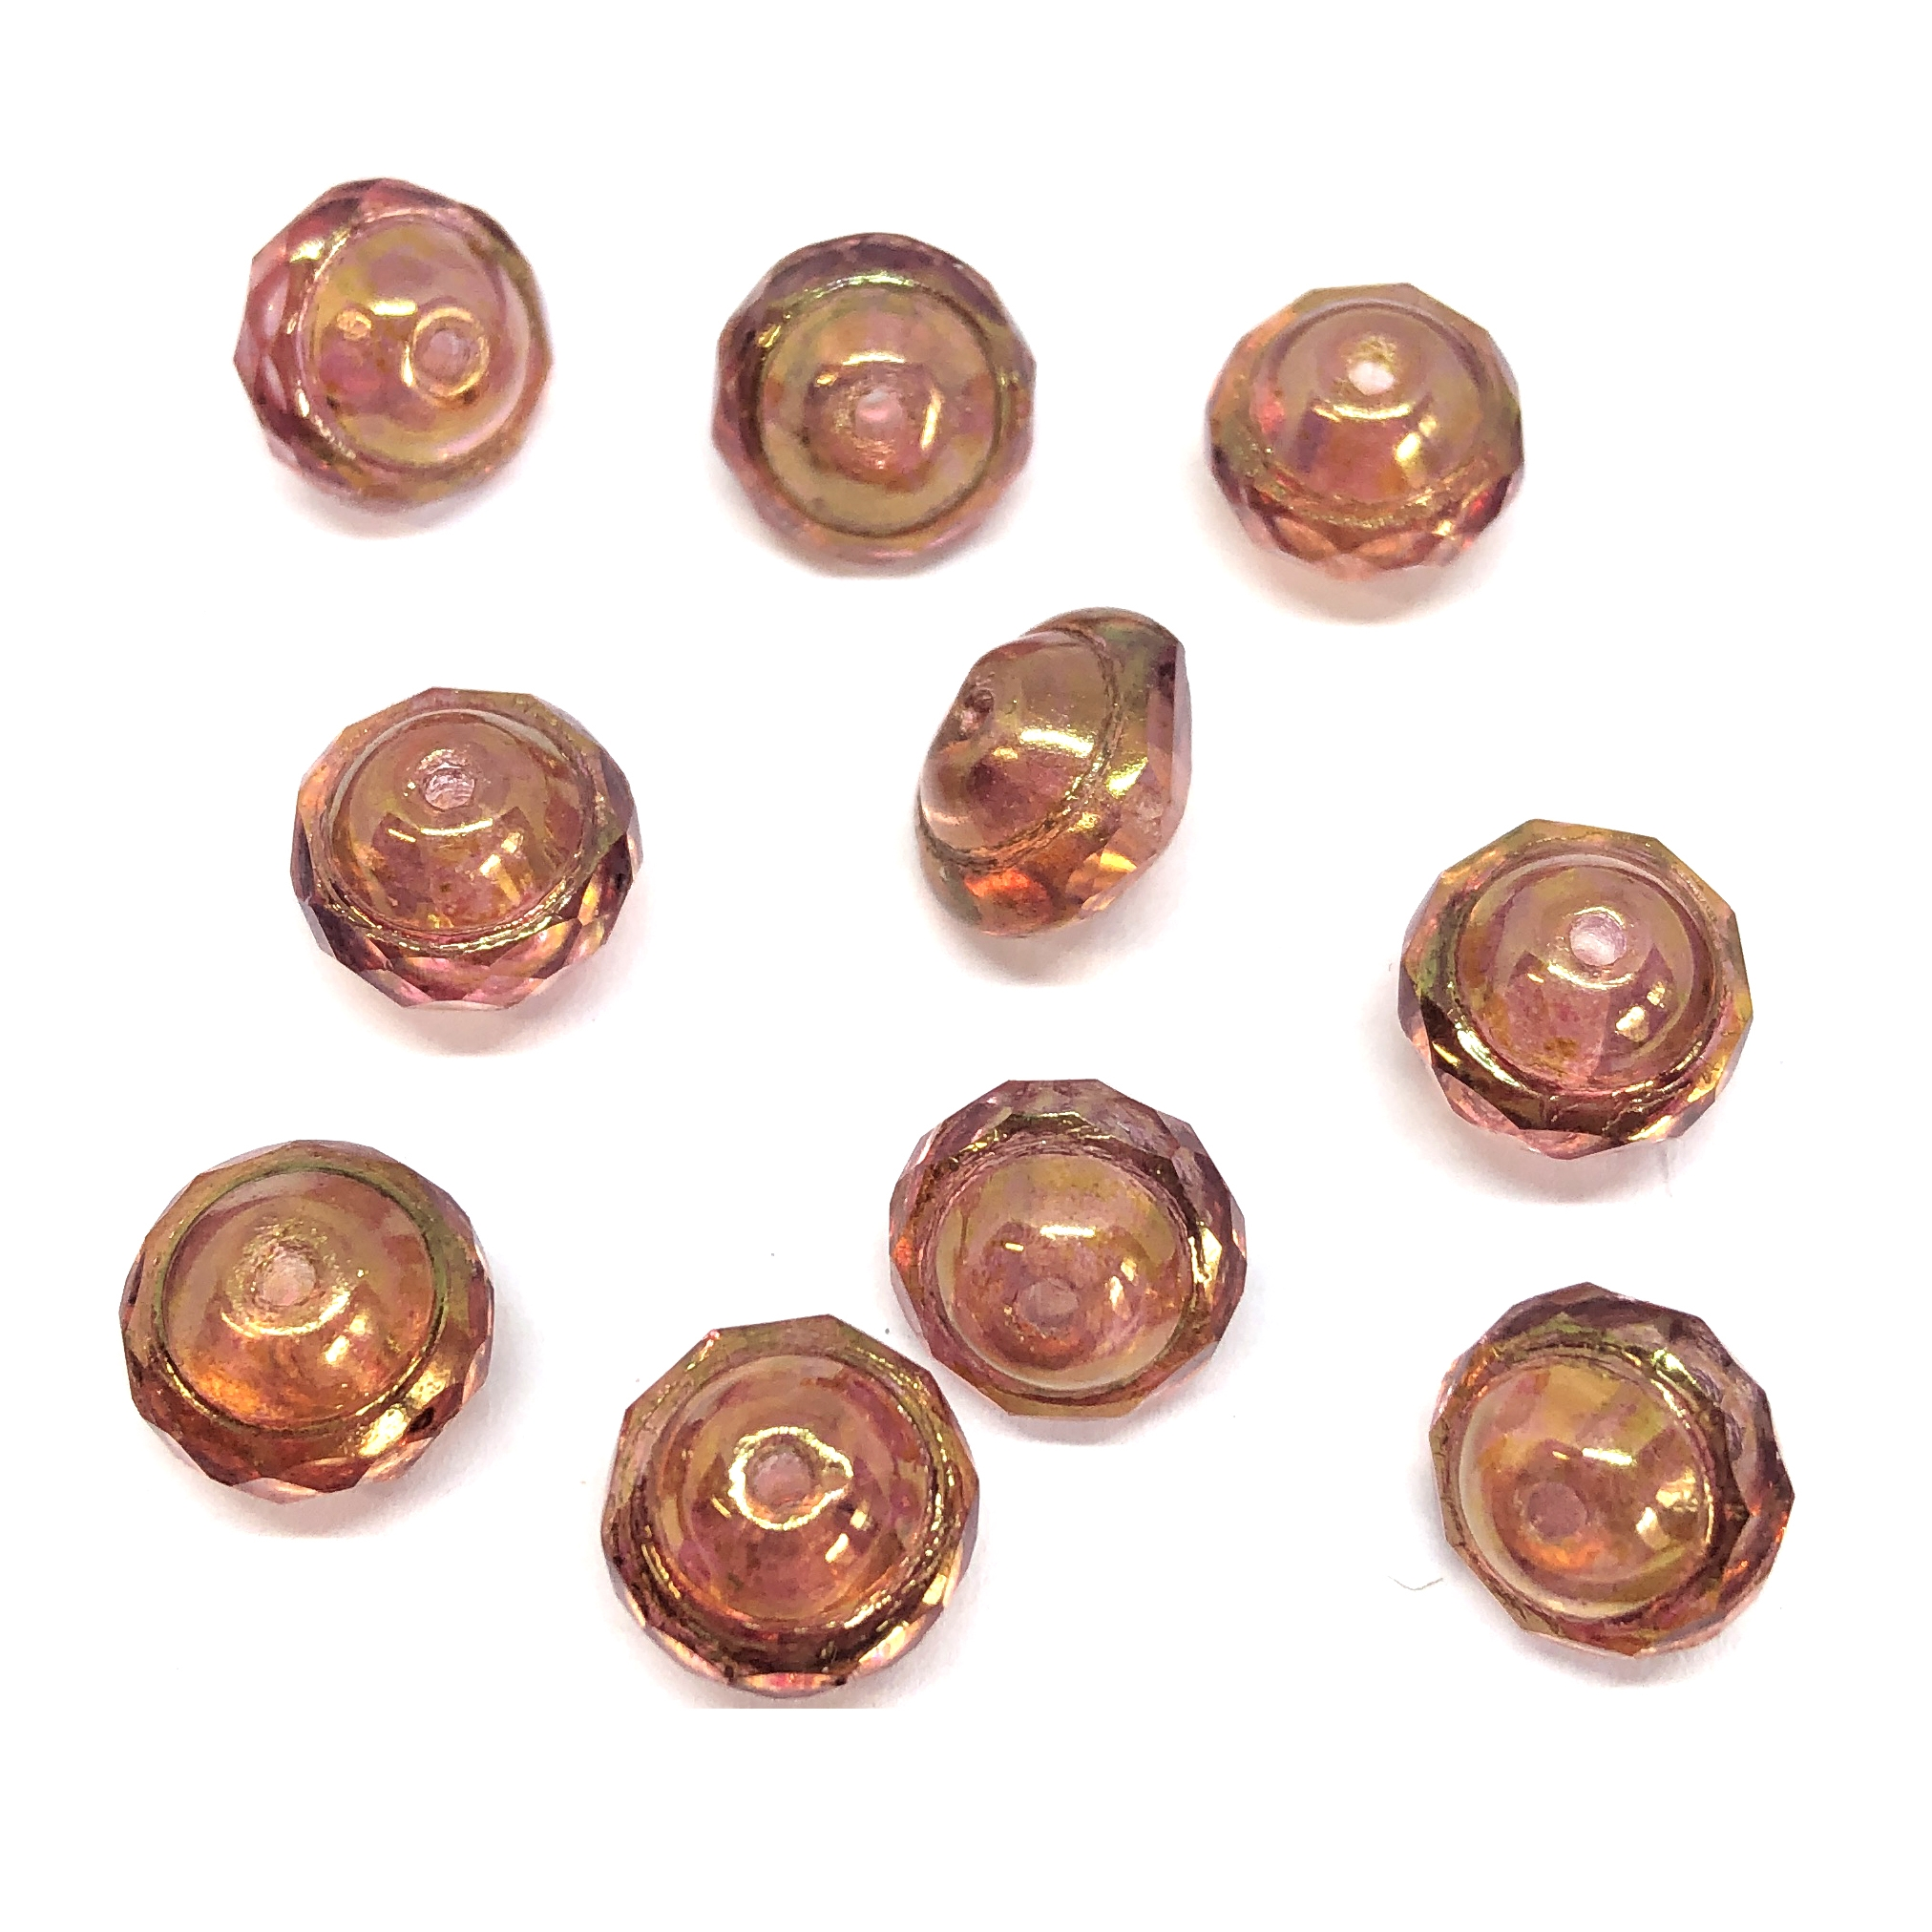 Saturn golden Beads, pink gold luster, Czech glass beads, 0517, saucer beads, Czech glass, Czech, glass, drilled, transparent beads, US made, B'sue Boutiques, jewelry making, 8x10mm